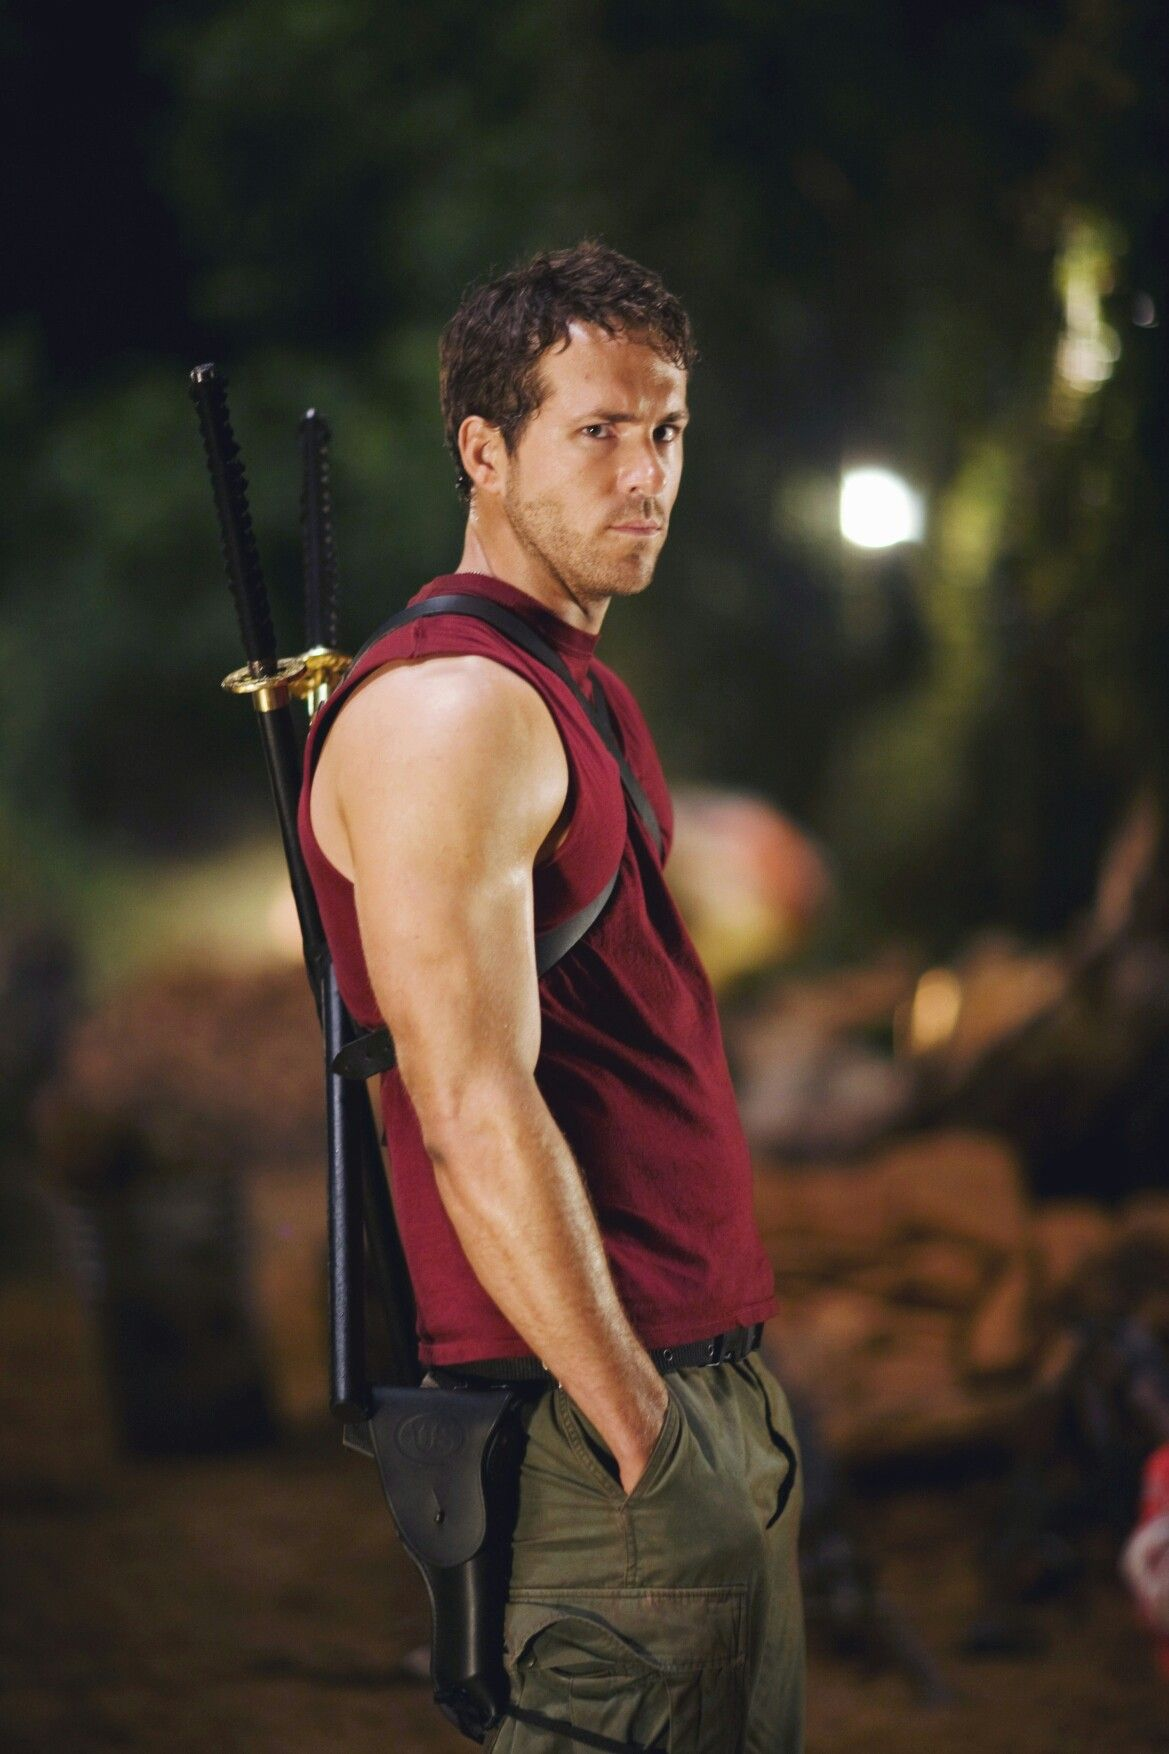 Wade Wilson X Men Origins Wolverine Ryan Reynolds Ryan Reynolds Deadpool Blake Lively Ryan Reynolds